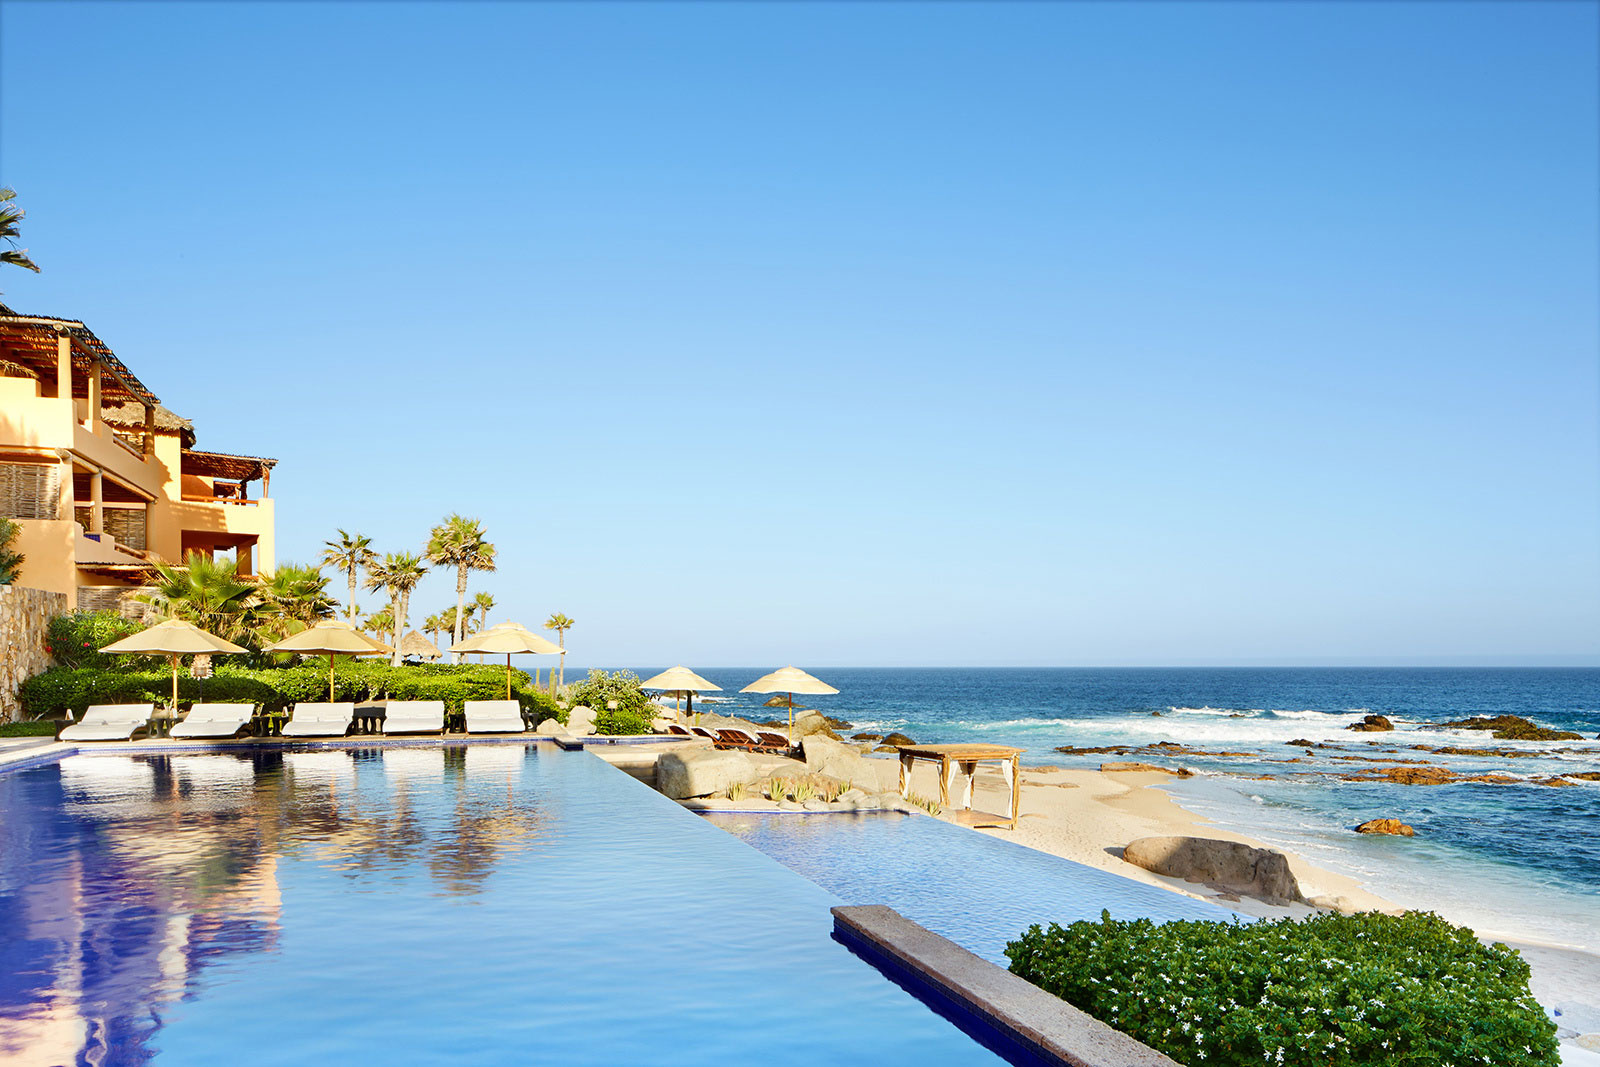 Pool at Esperanza Resort, Los Cabos  | Trinette+Chris Photographers